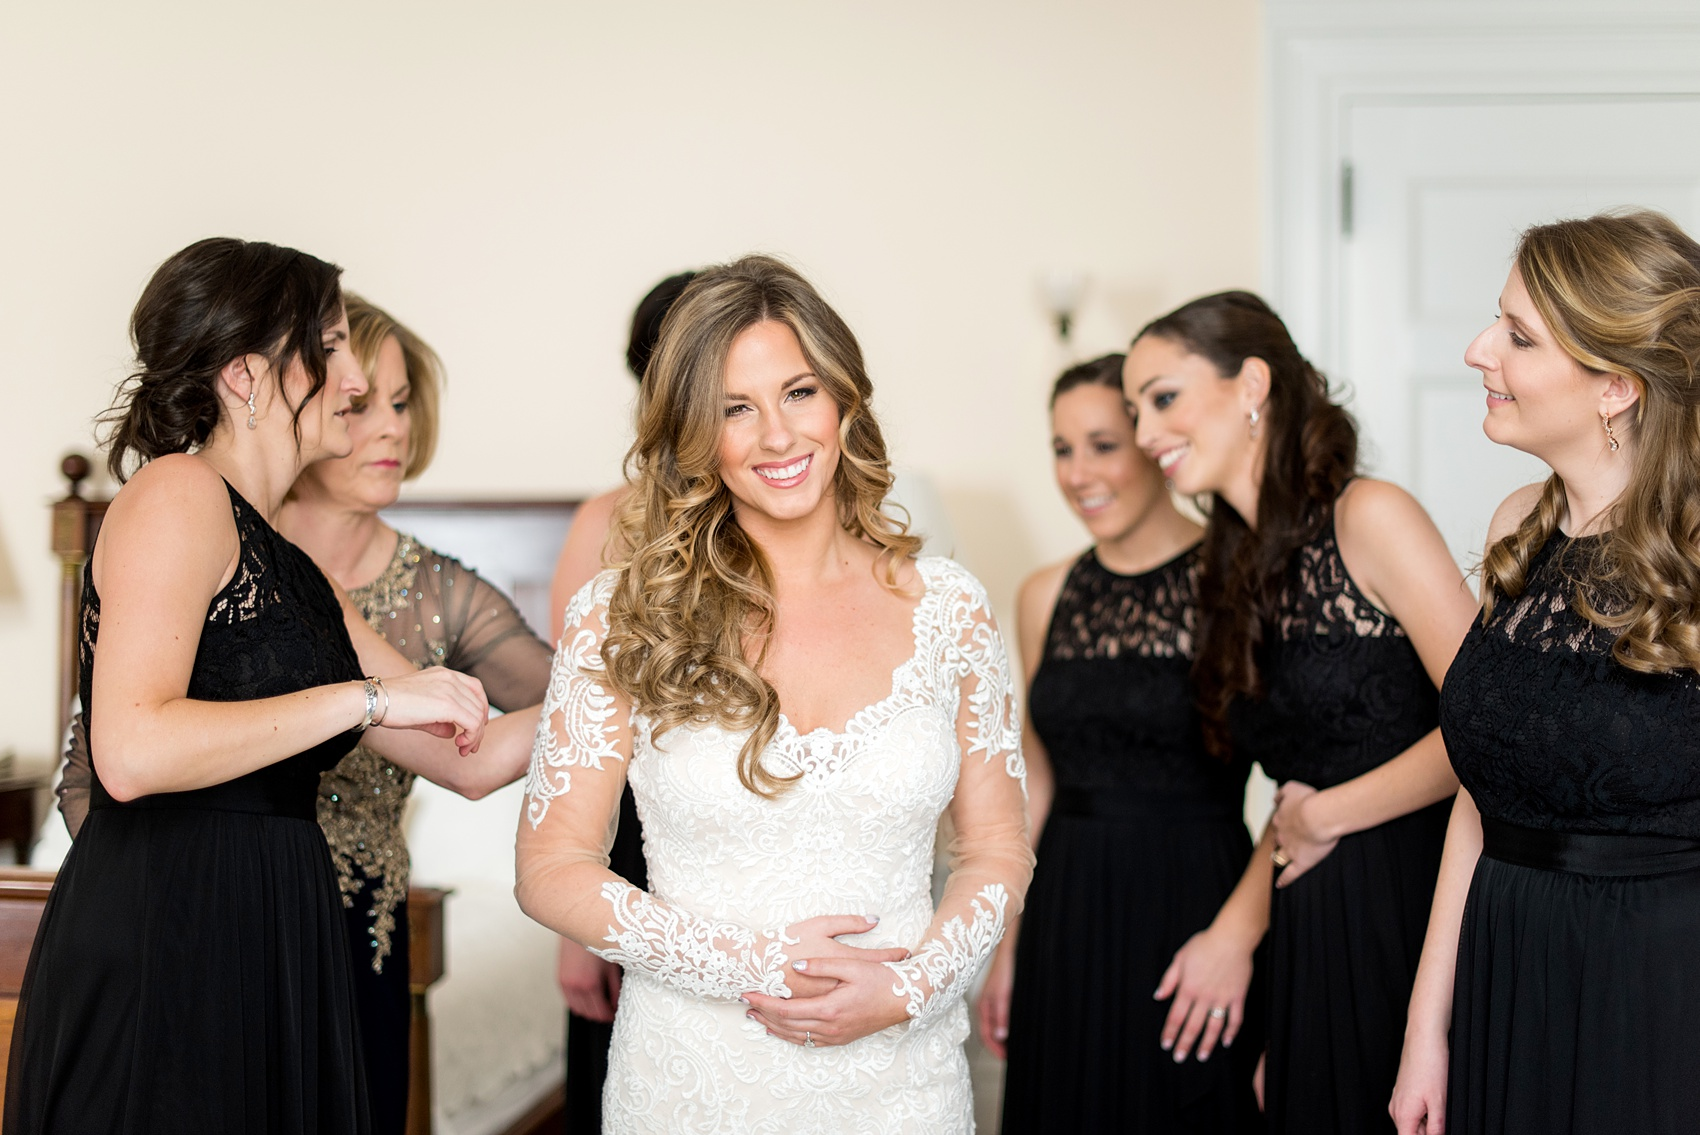 Wedding photos at Sleepy Hollow Country Club for a winter reception in January by Mikkel Paige Photography. The bridesmaids helped the bride dress in her lace gown on her winter wedding day.